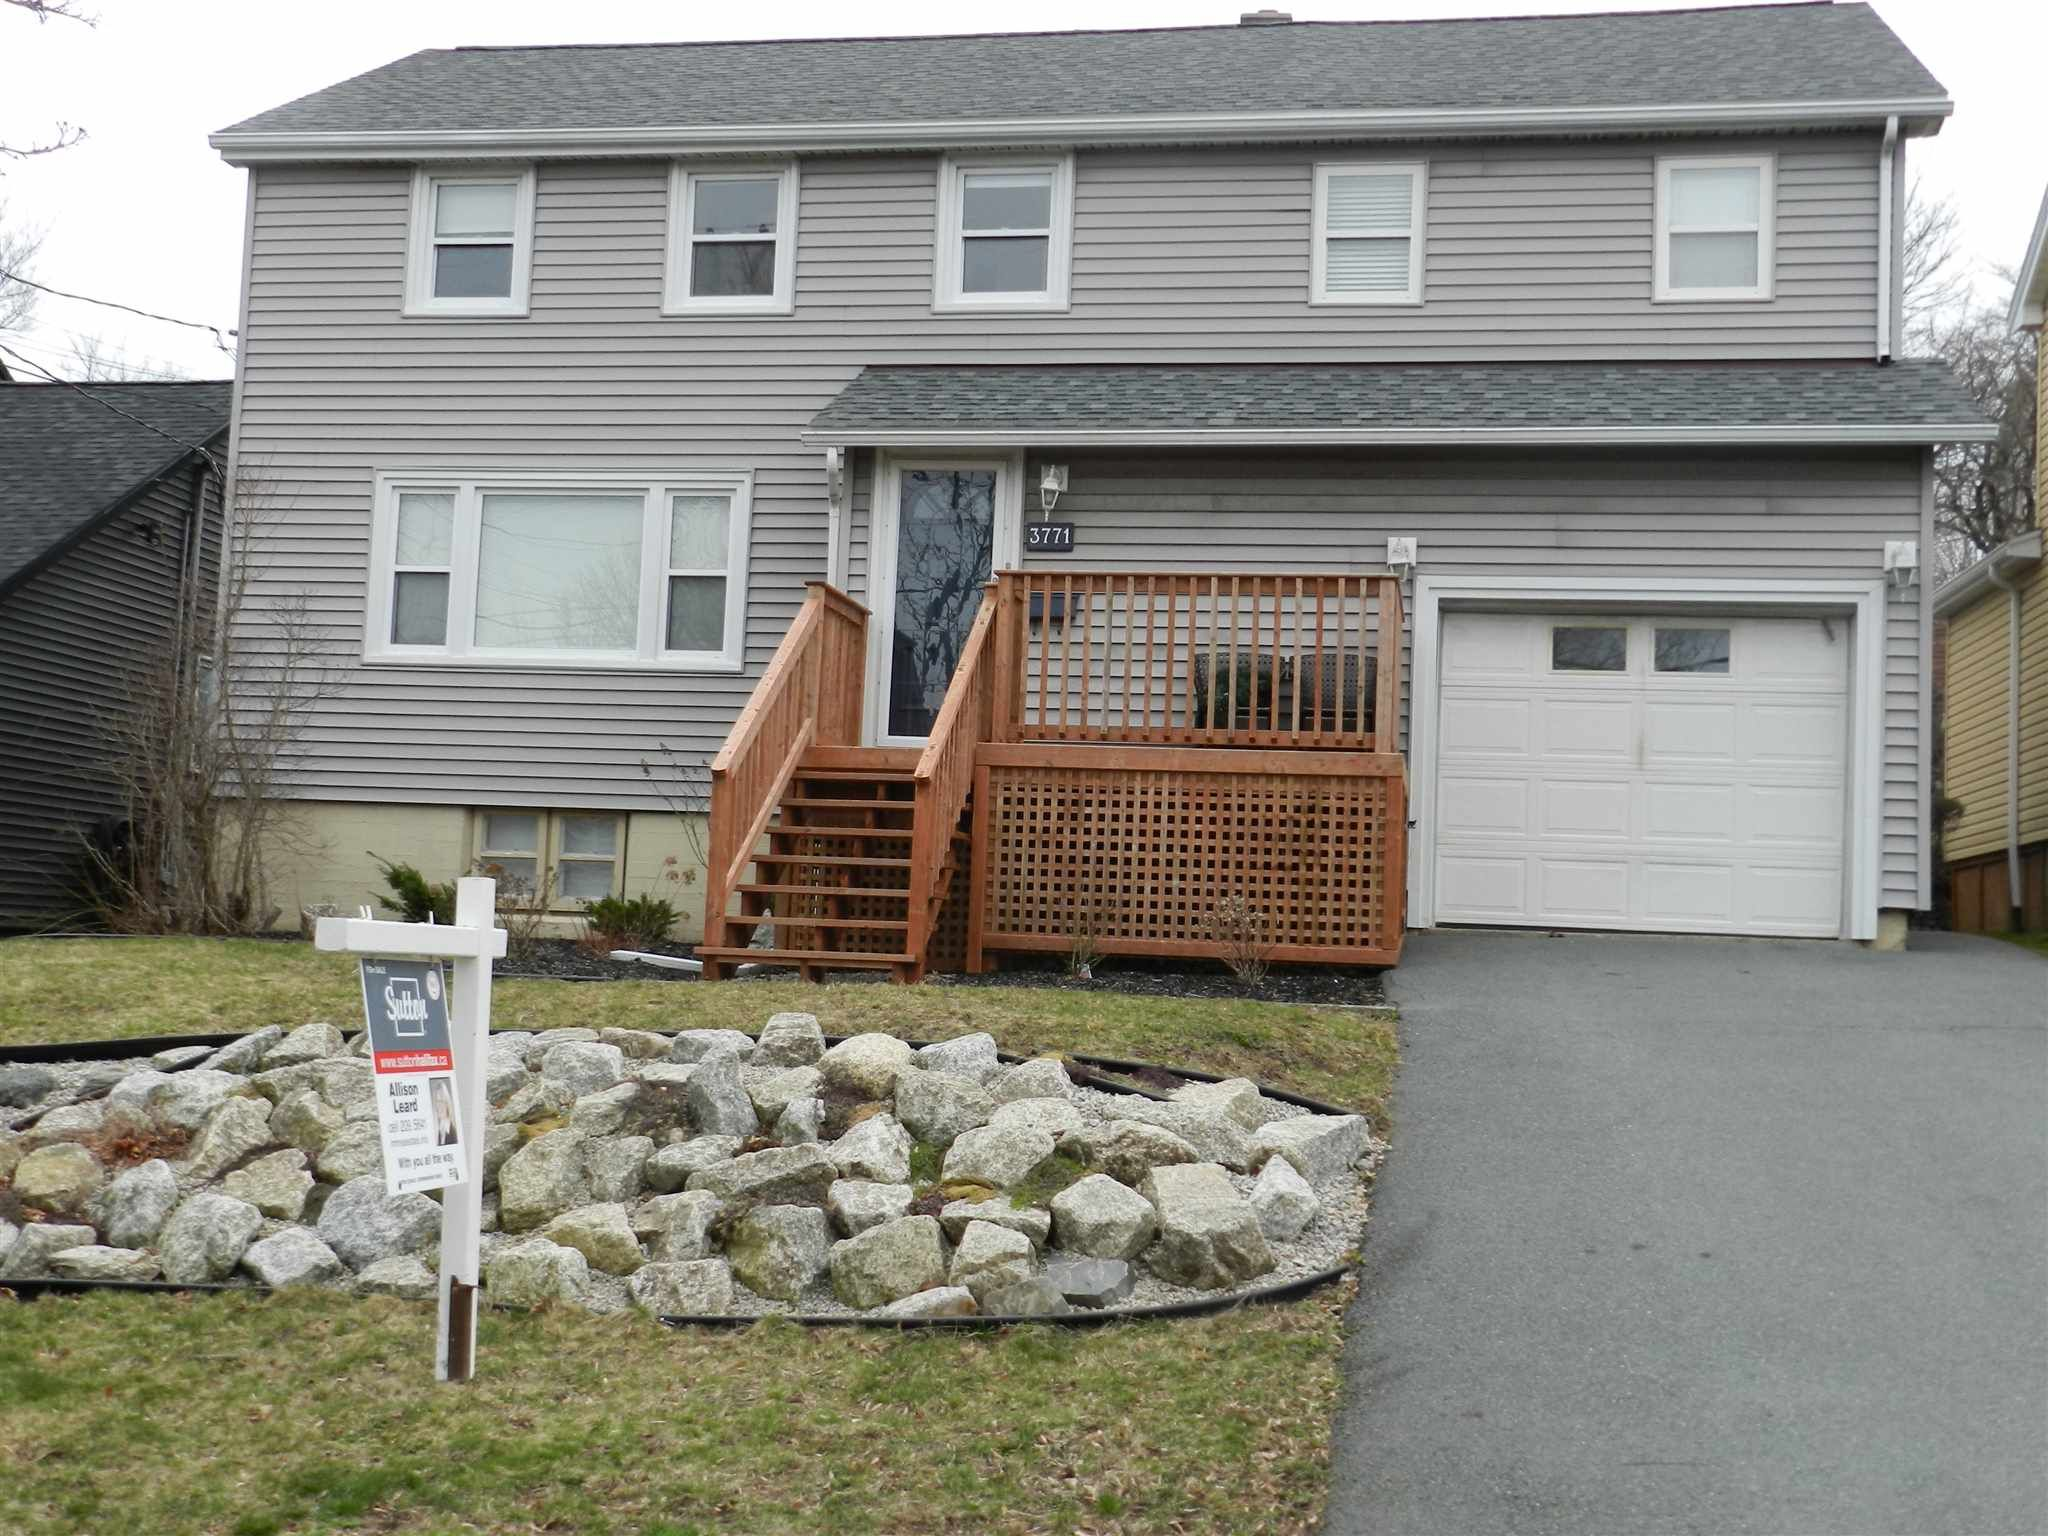 Main Photo: 3771 Memorial Drive in Halifax: 3-Halifax North Residential for sale (Halifax-Dartmouth)  : MLS®# 202107498